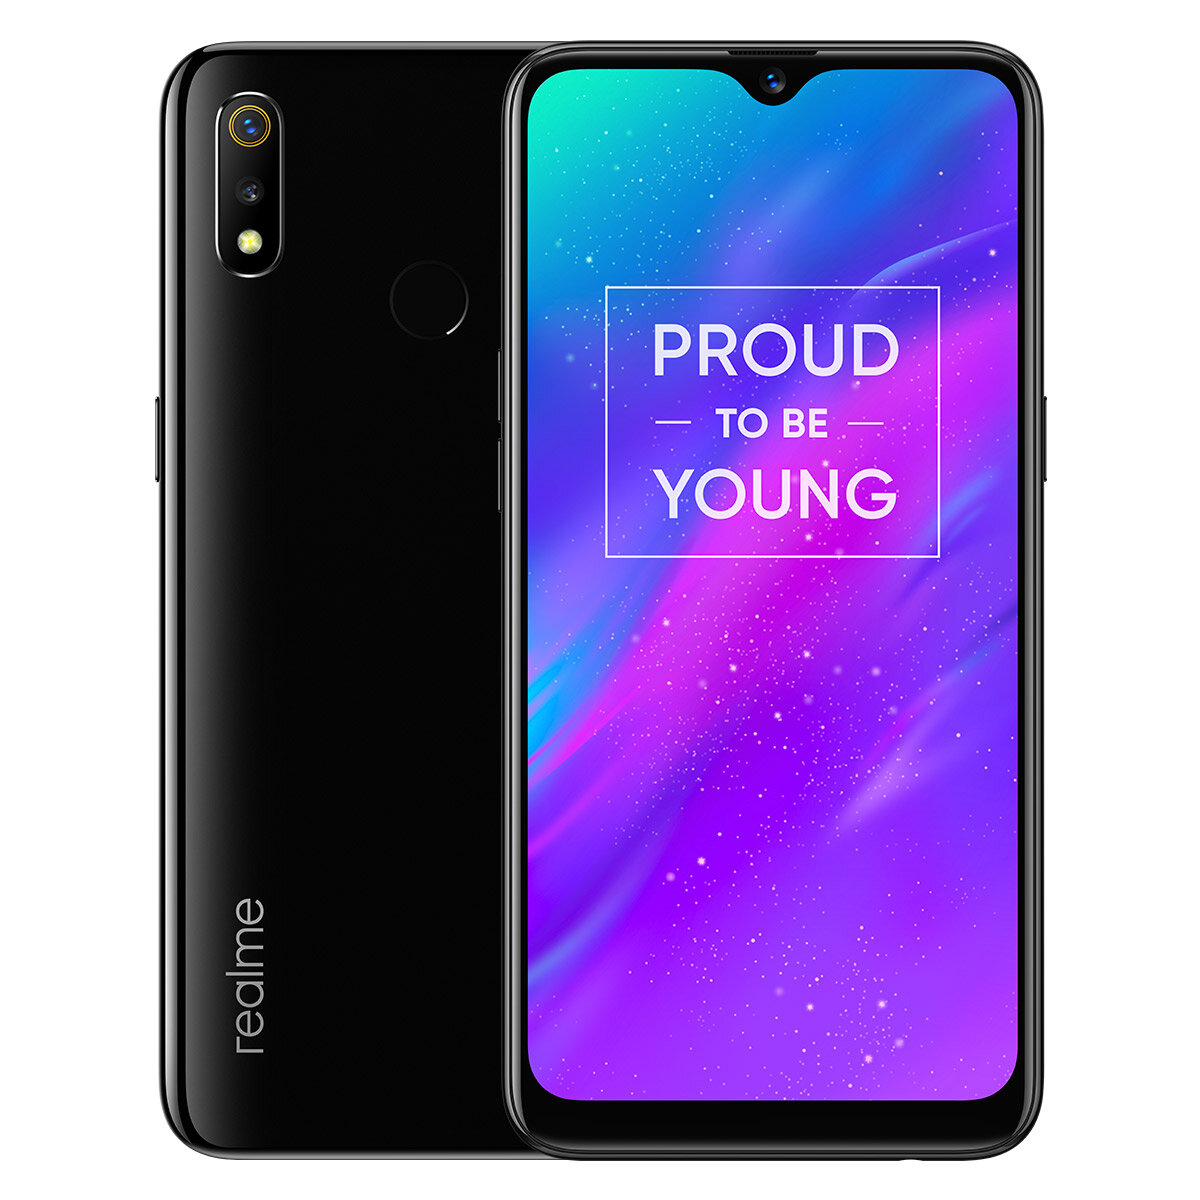 OPPO Realme 3 Global Version 6.2 pouces HD + Android 9.0 4230mAh 13MP AI Caméra frontale 3GB RAM 64GB ROM Helio P70 Téléphone intelligent Octa Core 2.1GHz 4G